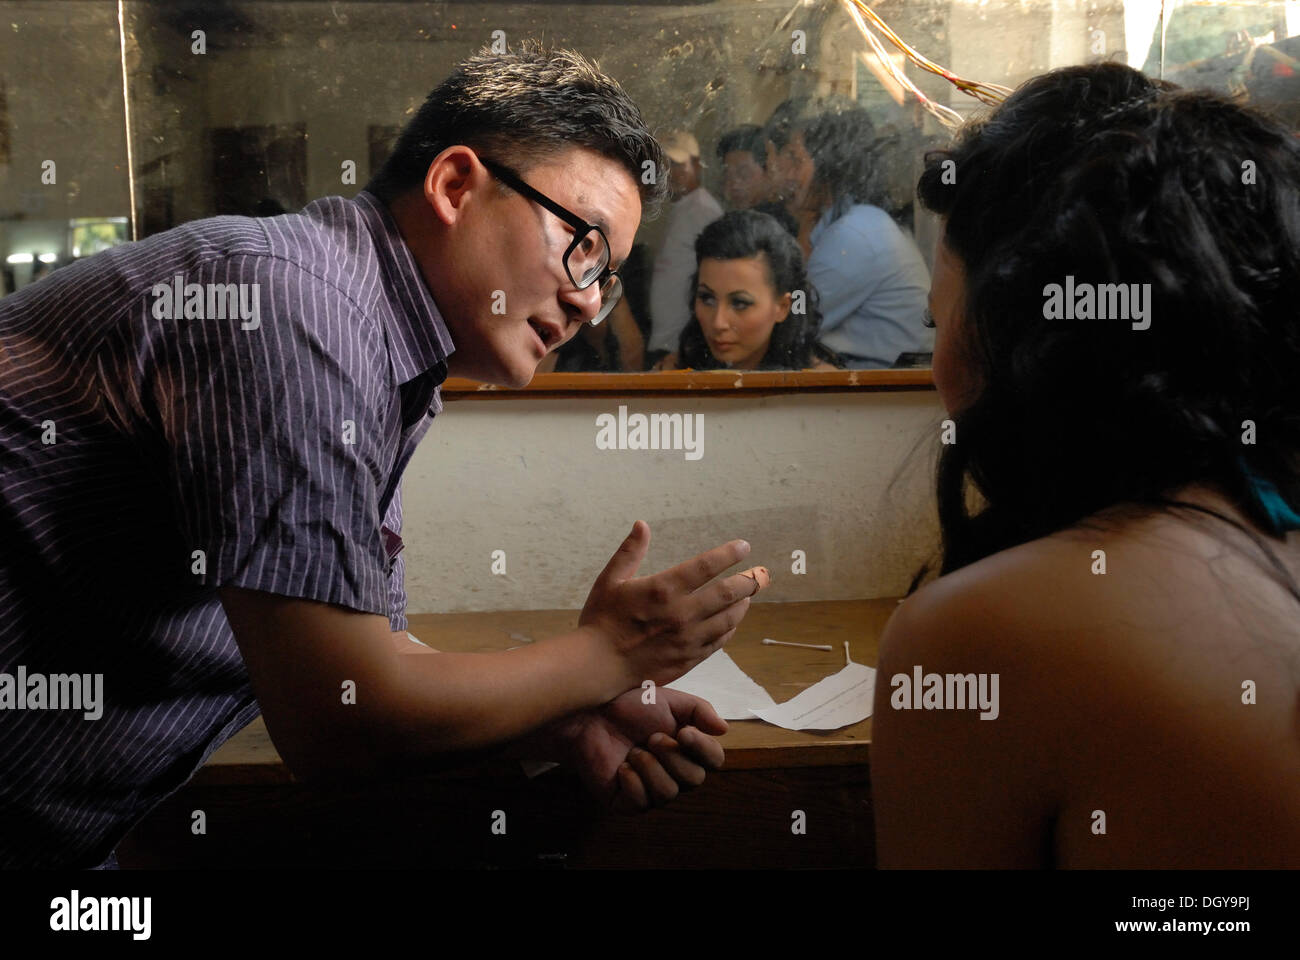 Winner of the Miss Tibet in Exile 2011 beauty contest, Tenzin Yangkyi in Dharamsala, having conversation in make-up room before - Stock Image